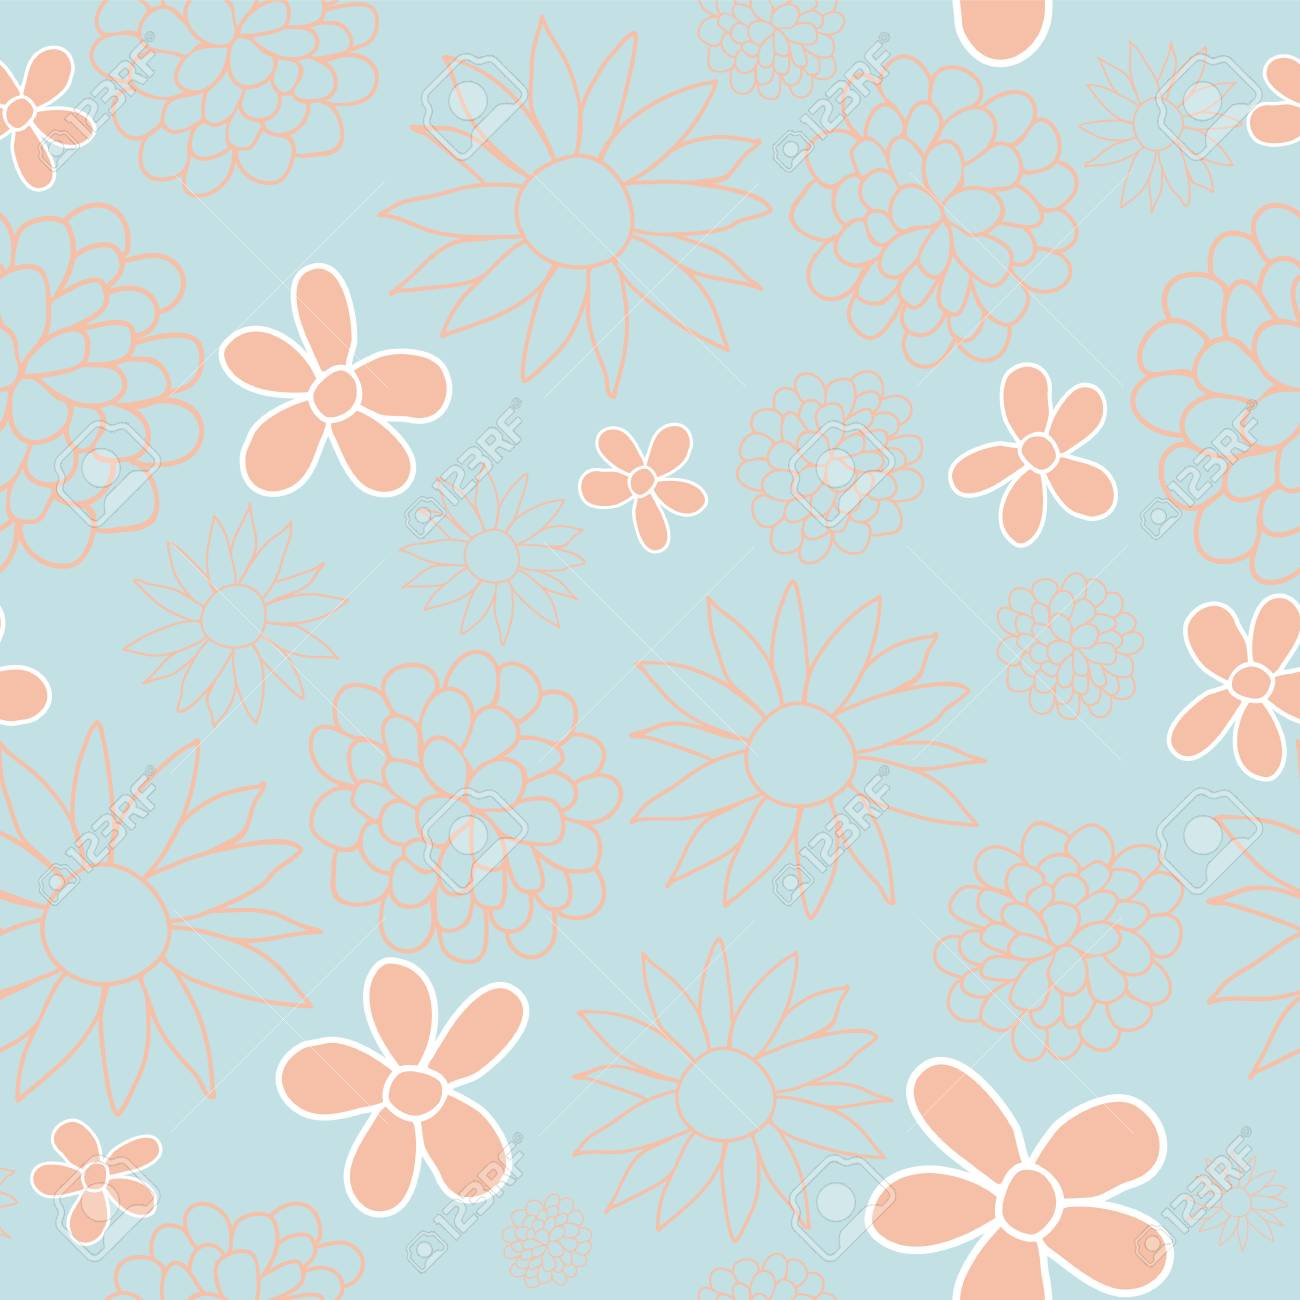 Blue And Peach Floral Seamless Pattern Design Perfect For Fabric